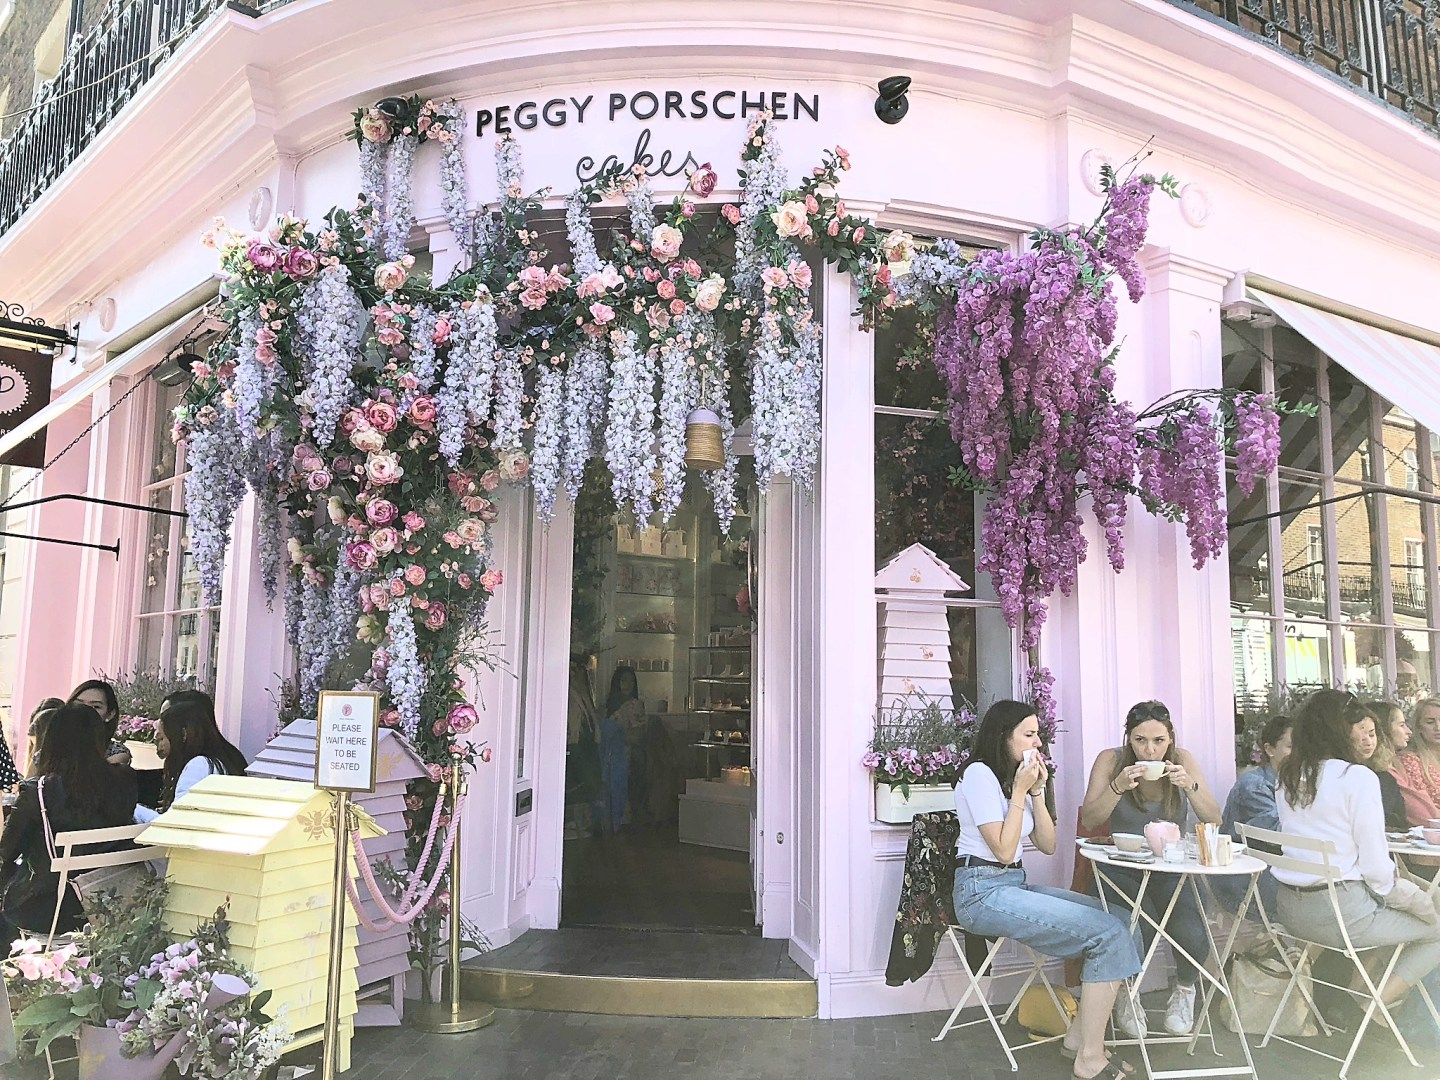 Review: Why Peggy Porschen is Overrated | FOOD | FREYA WILCOX